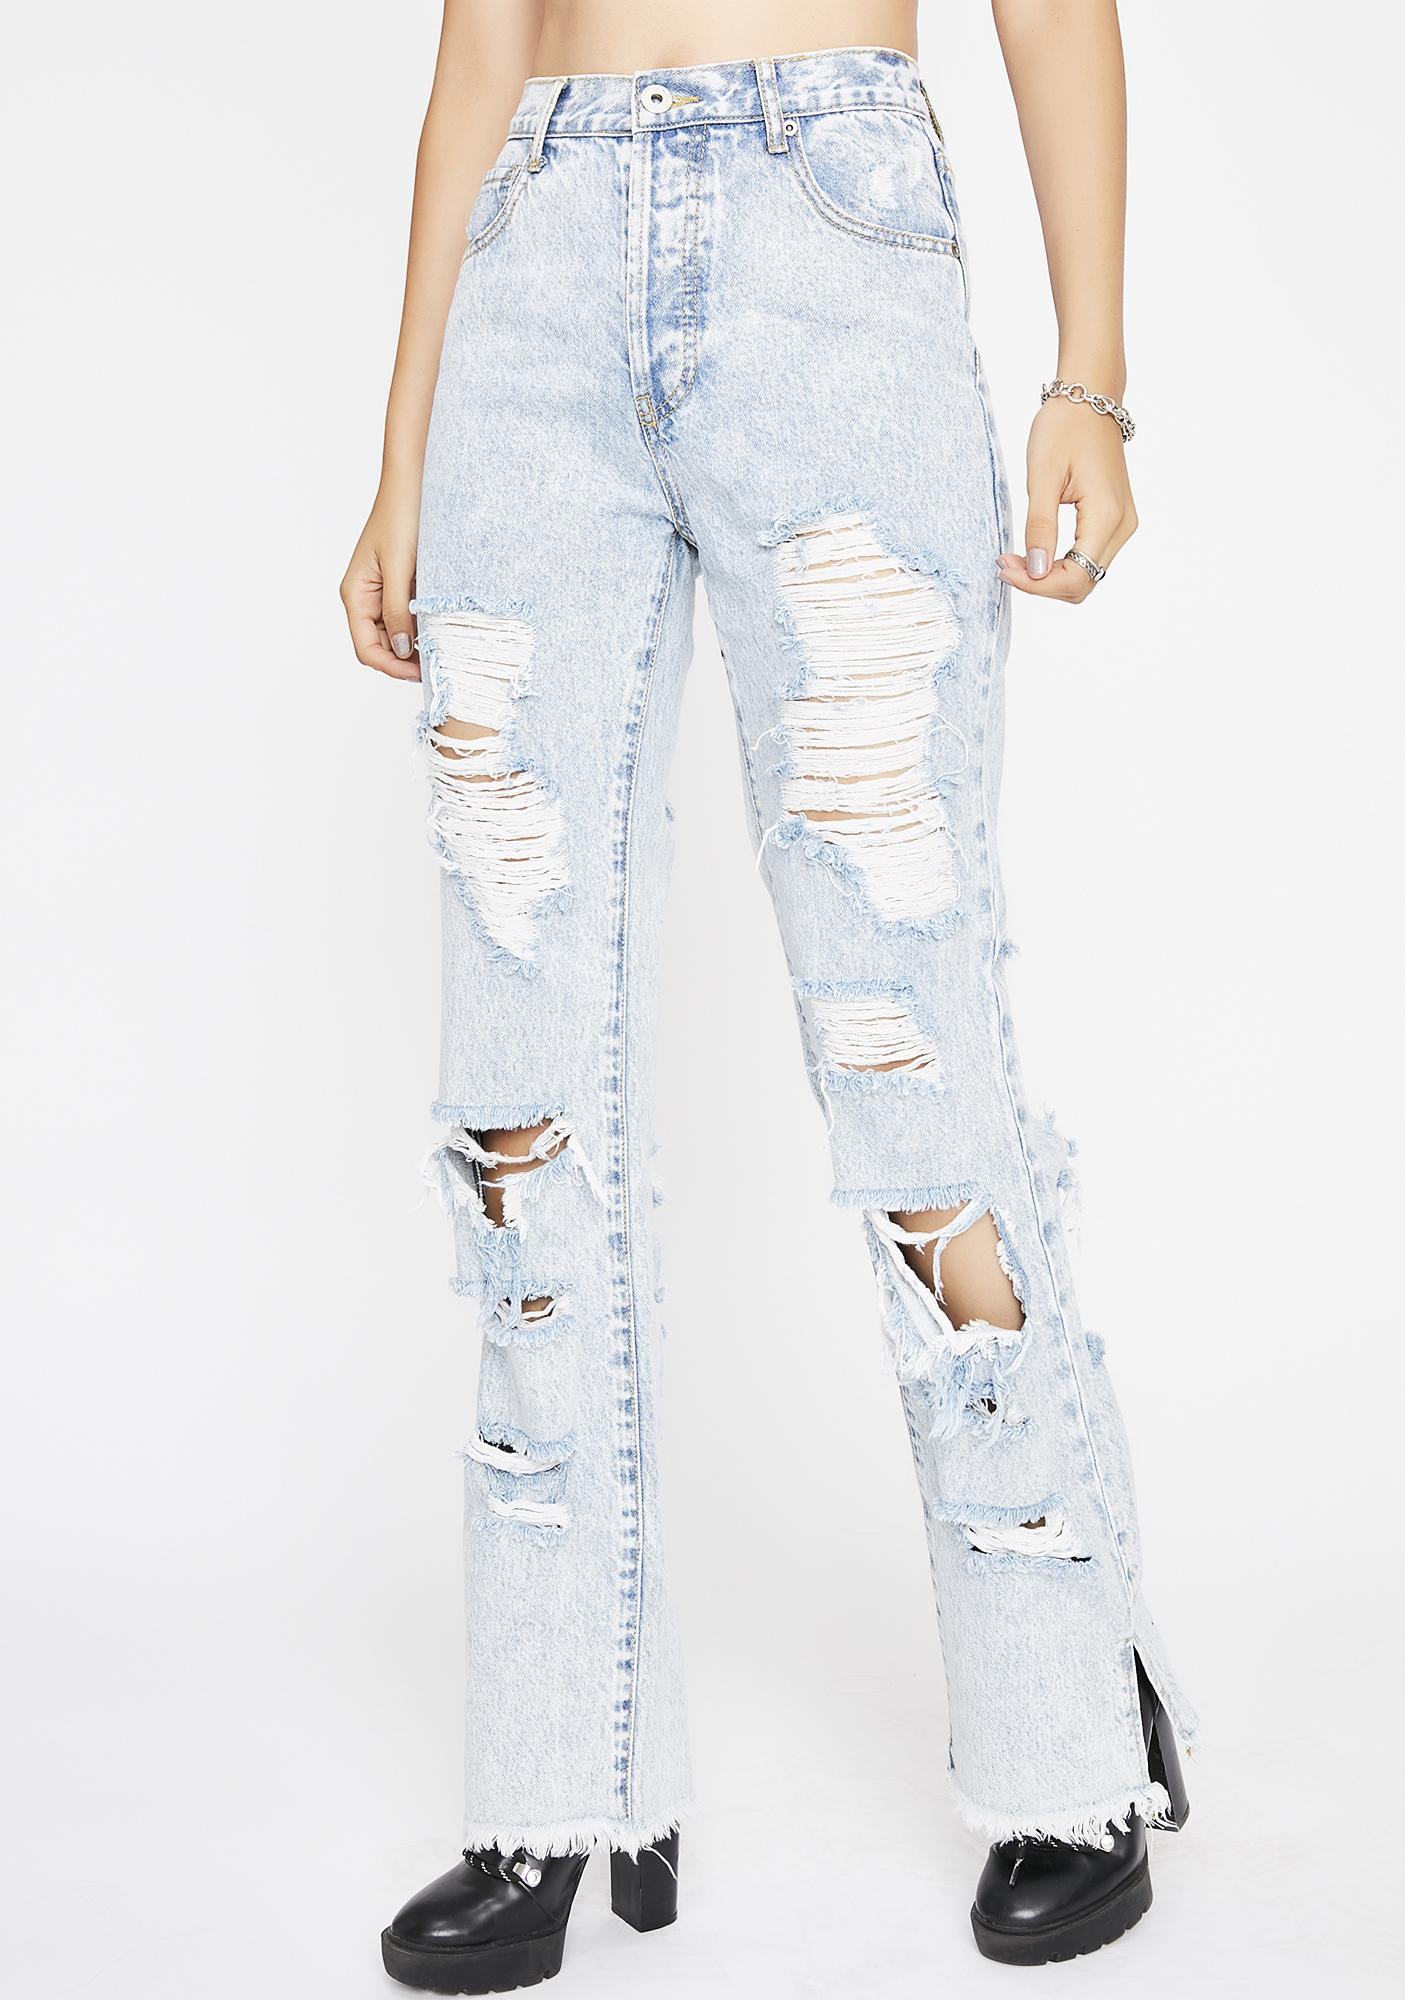 Stay Litty Distressed Jeans